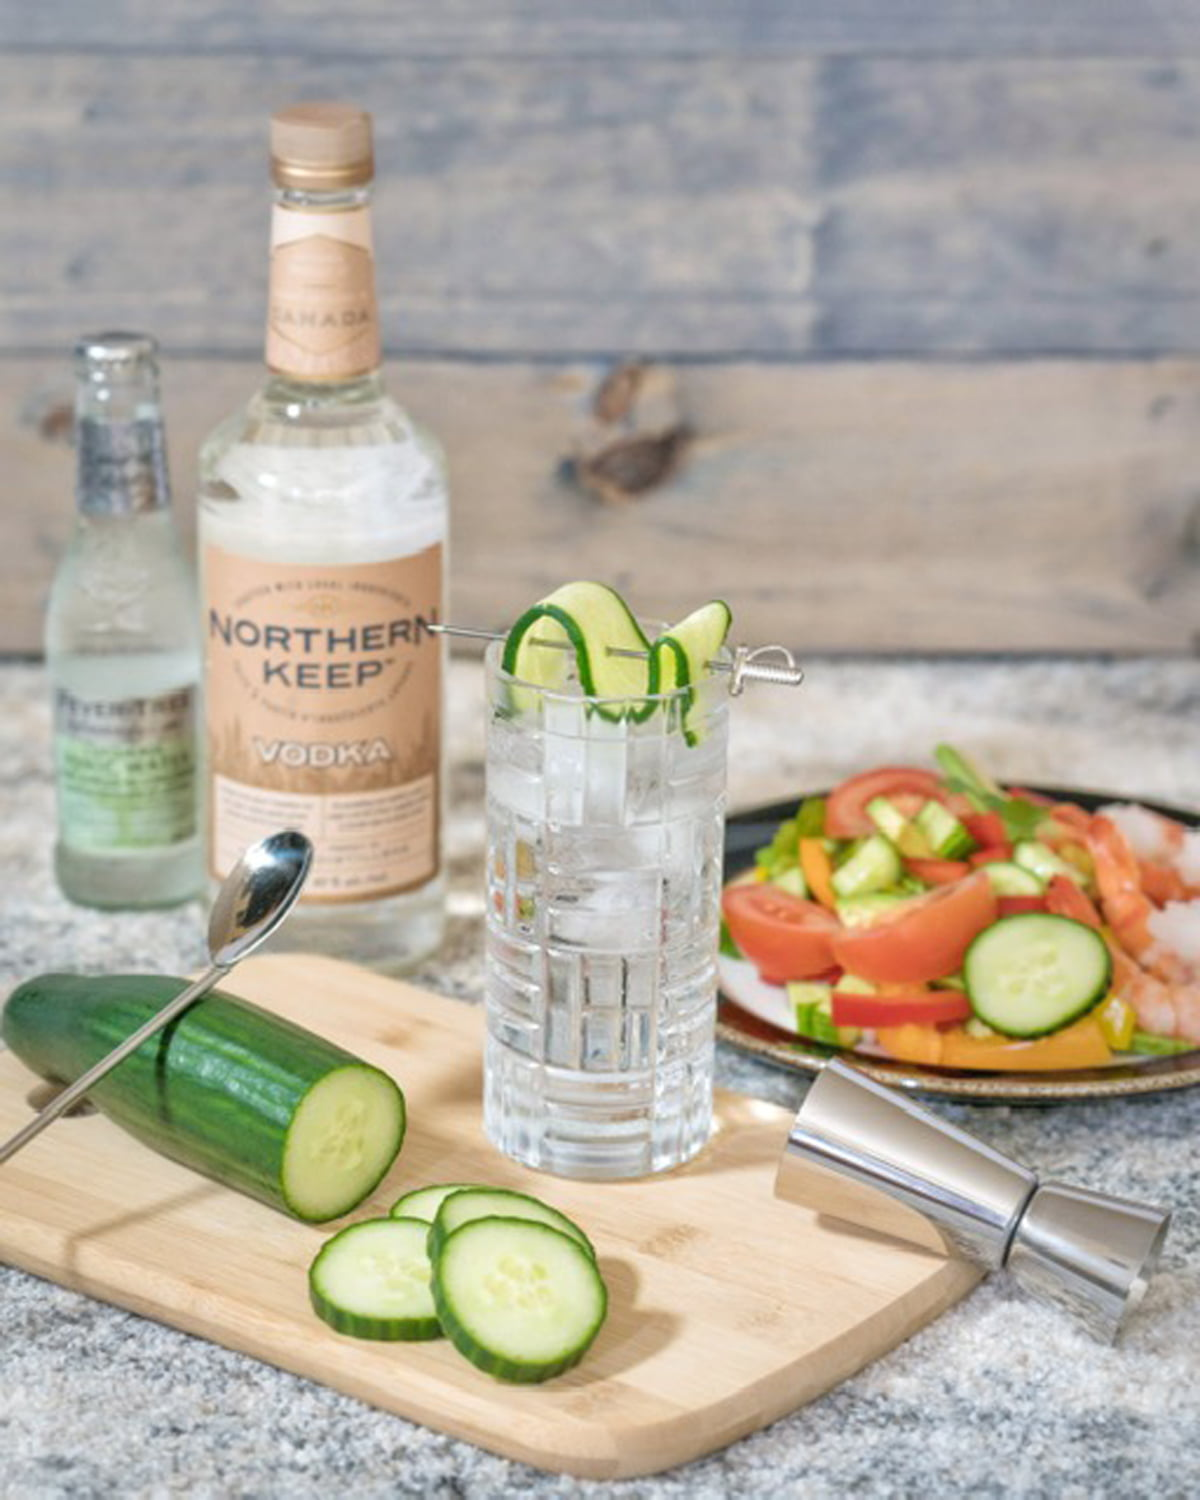 Northern Keep Vodka Cucumber Tonic